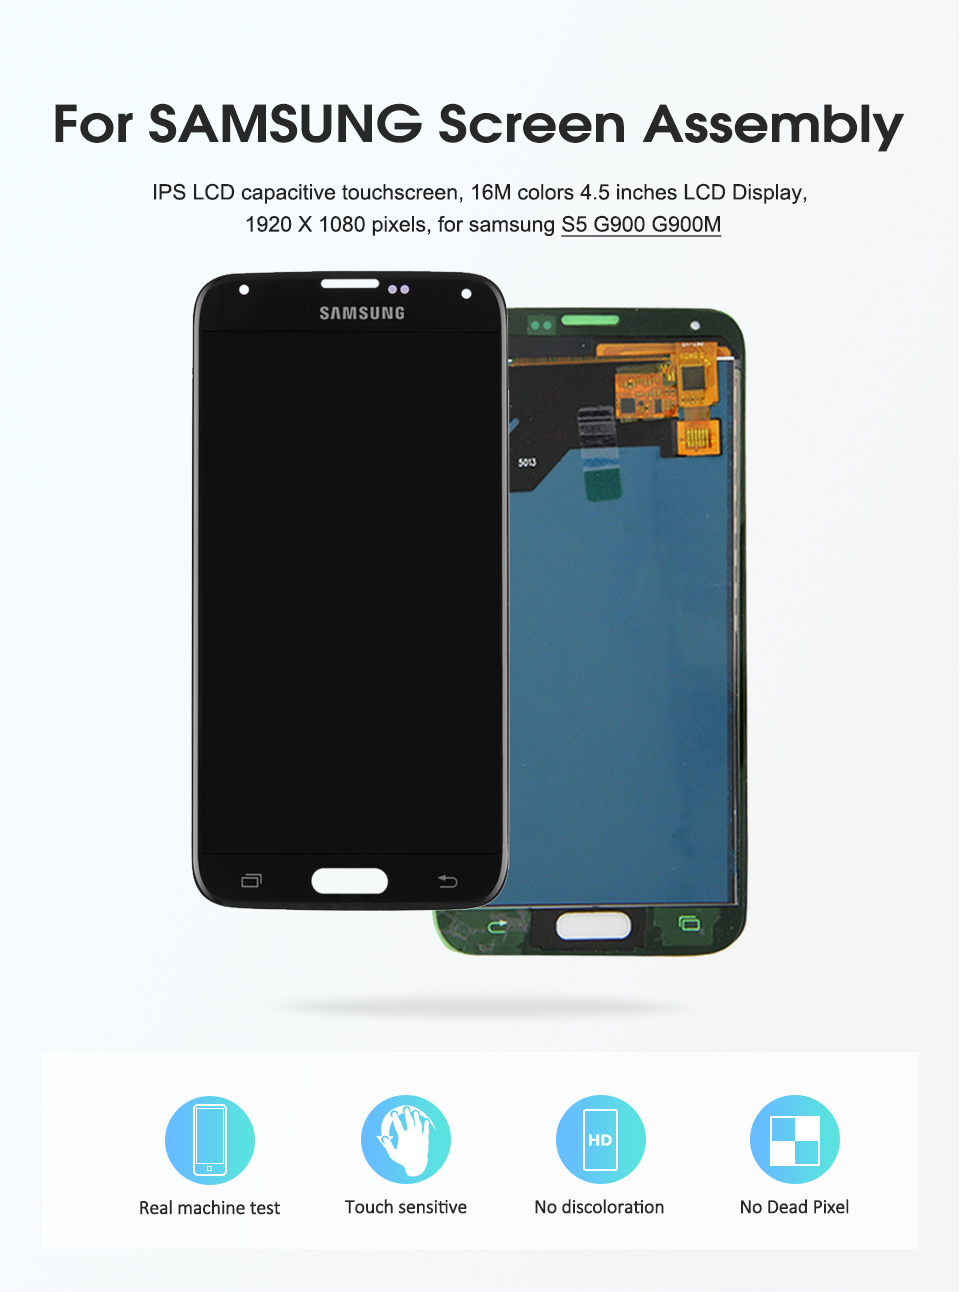 HTB1BMwlQFYqK1RjSZLeq6zXppXaH 100% Test Lcd for Samsung Galaxy 4G S5 i9600 G900 G900M G900F Lcd Display Touch Screen Digitizer Assembly (not compatible G900H)